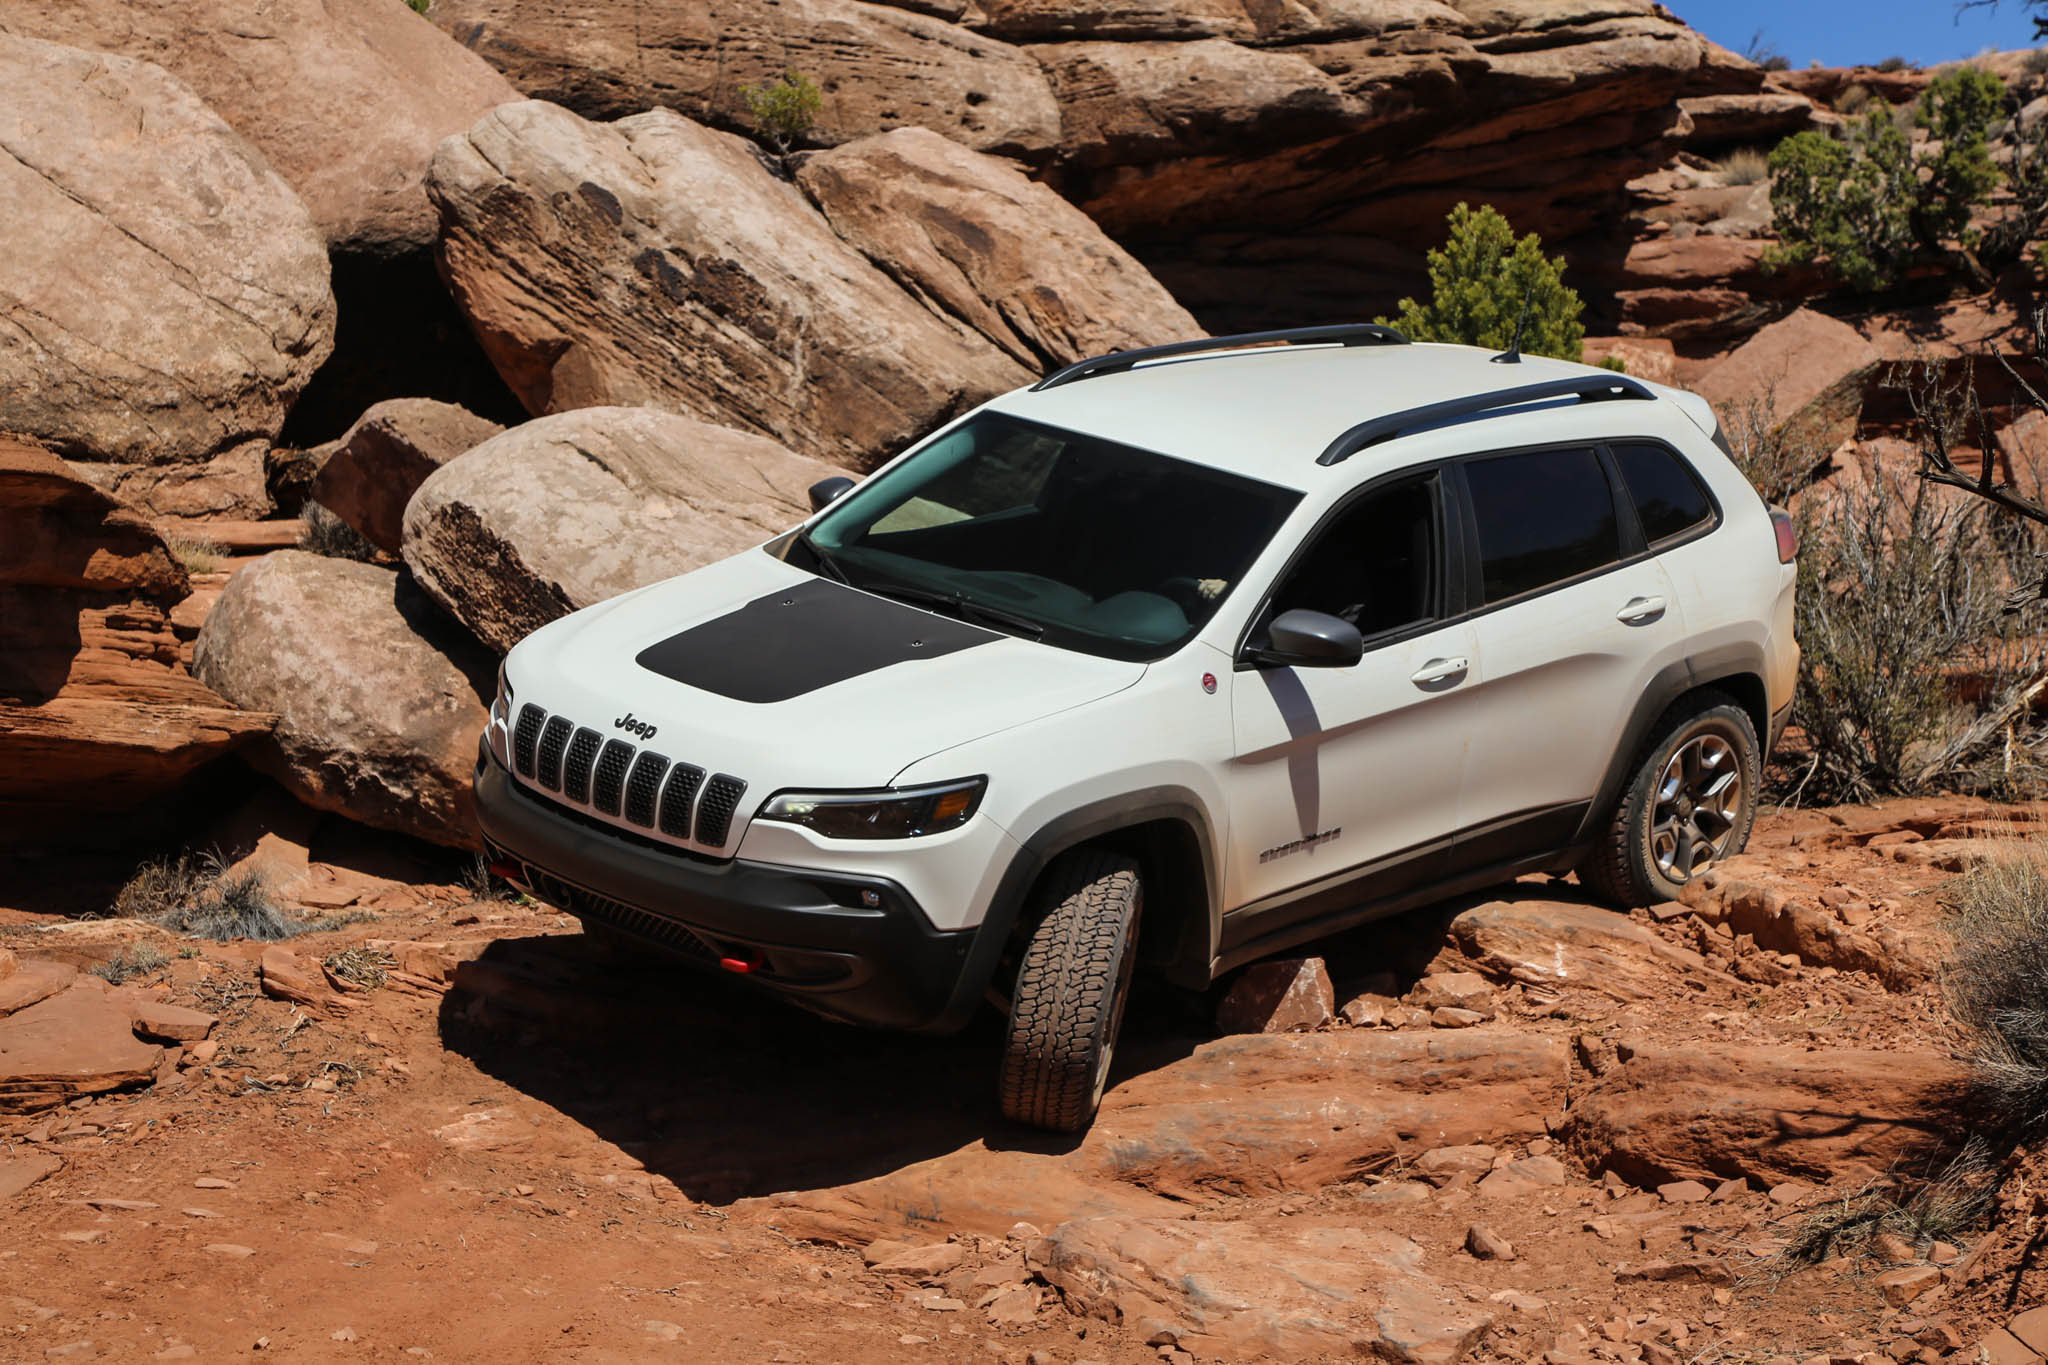 2018 Jeep Wrangler Rubicon And Cherokee Trailhawk 9